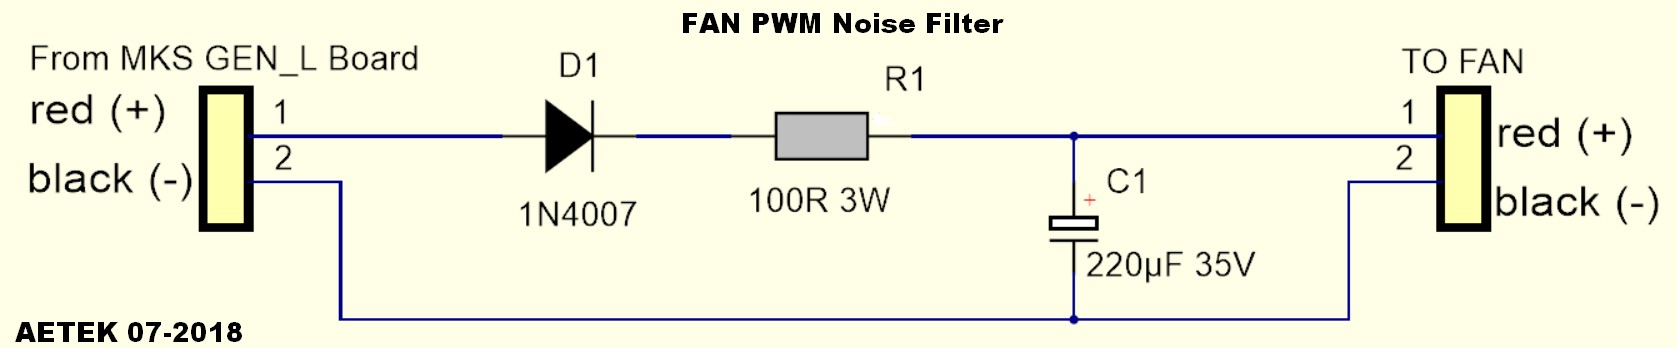 Remove Fan PWM Noise [The Unofficial JGAurora Wiki]